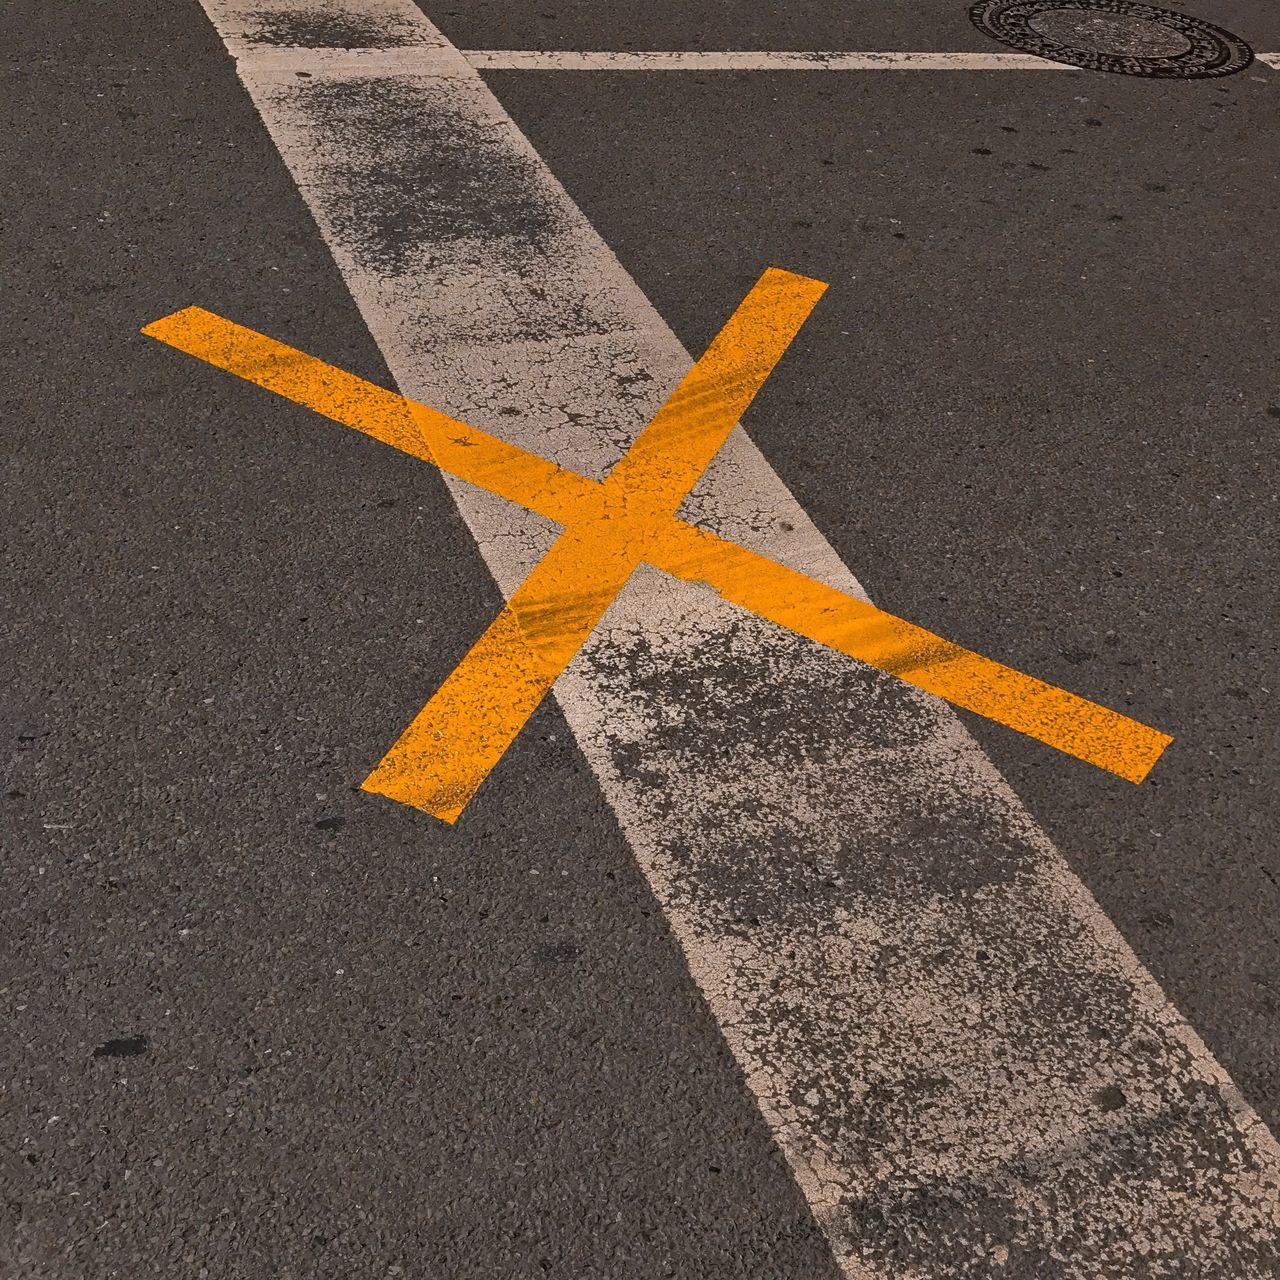 road marking, road, transportation, yellow, asphalt, street, guidance, no people, communication, road sign, outdoors, day, city